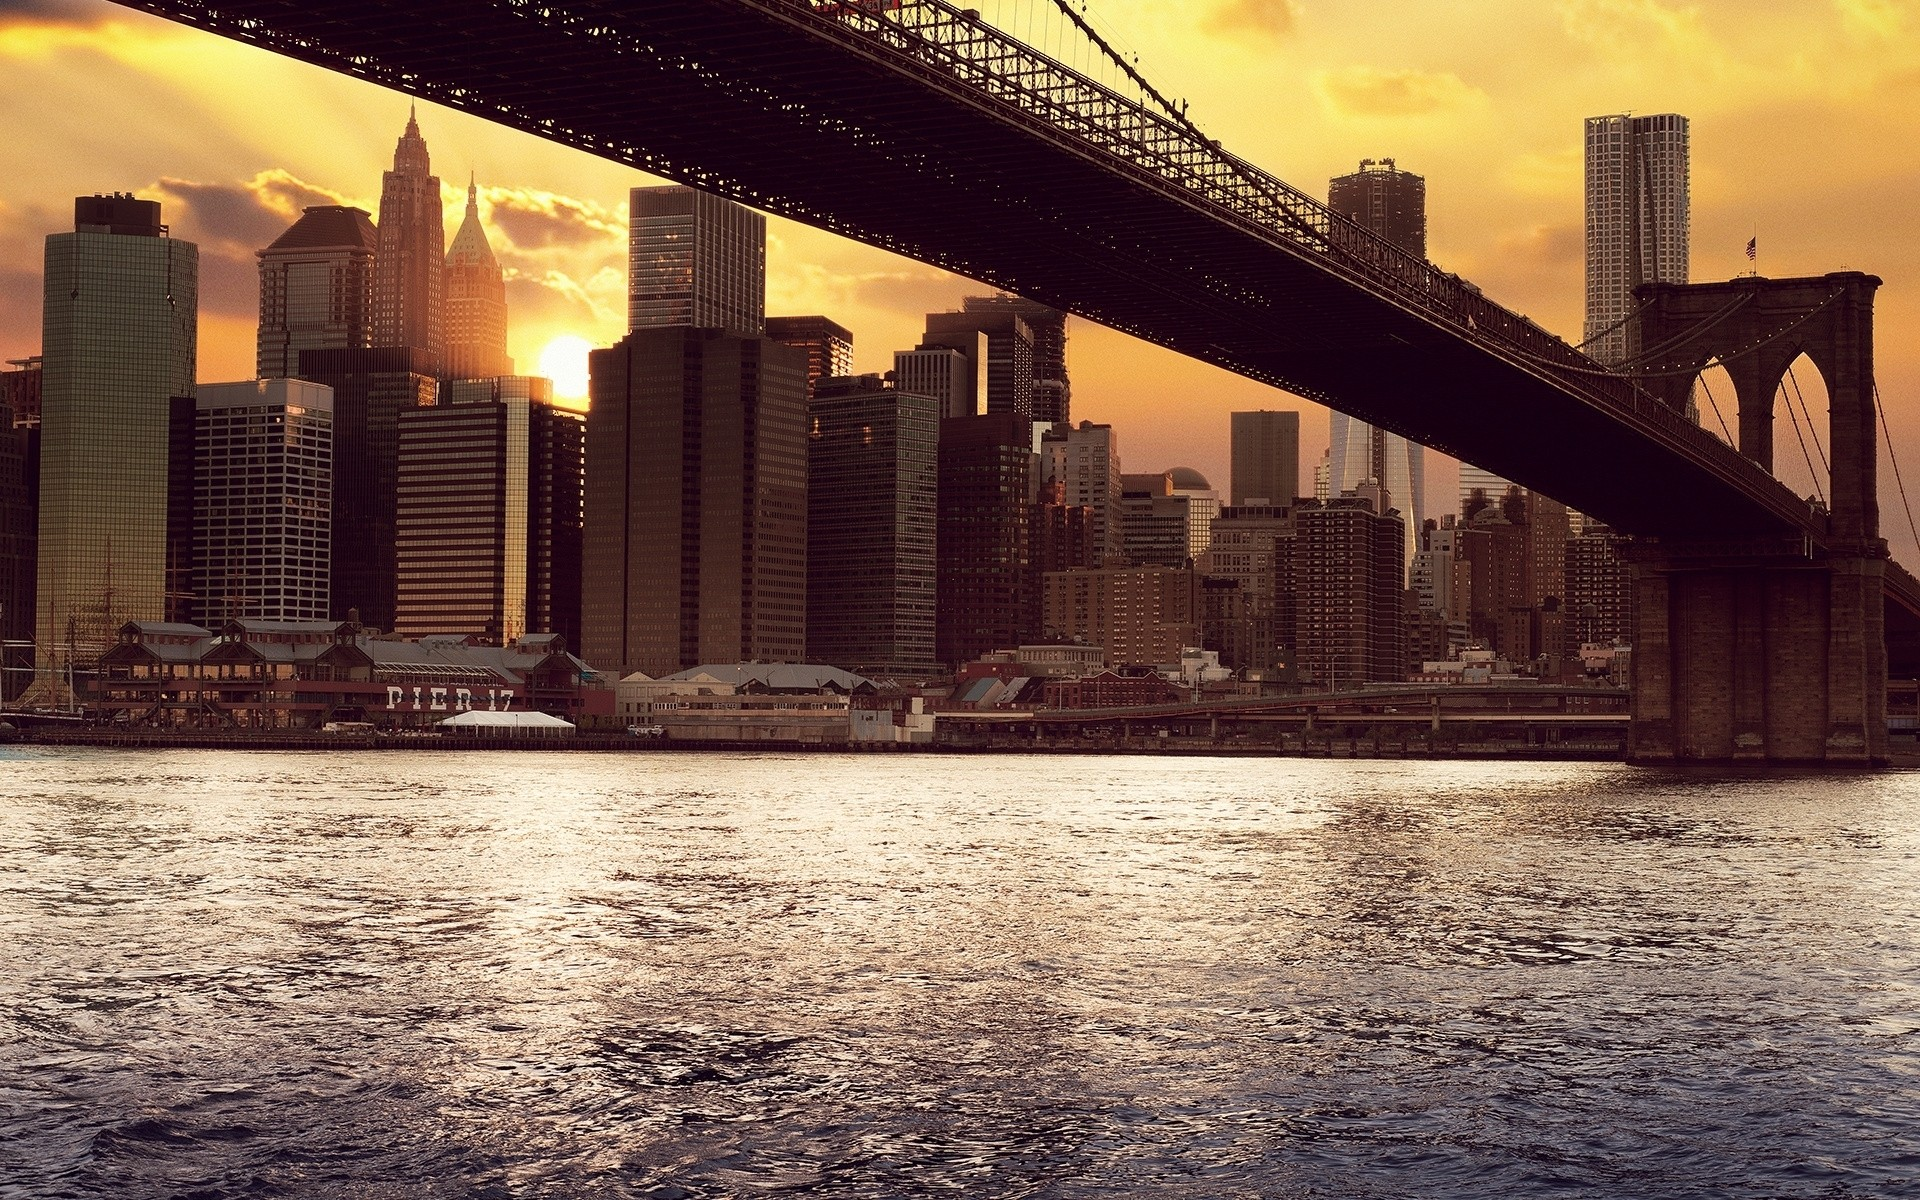 Daily Wallpaper: Pier 17, Brooklyn, New York City | I Like To Waste My Time